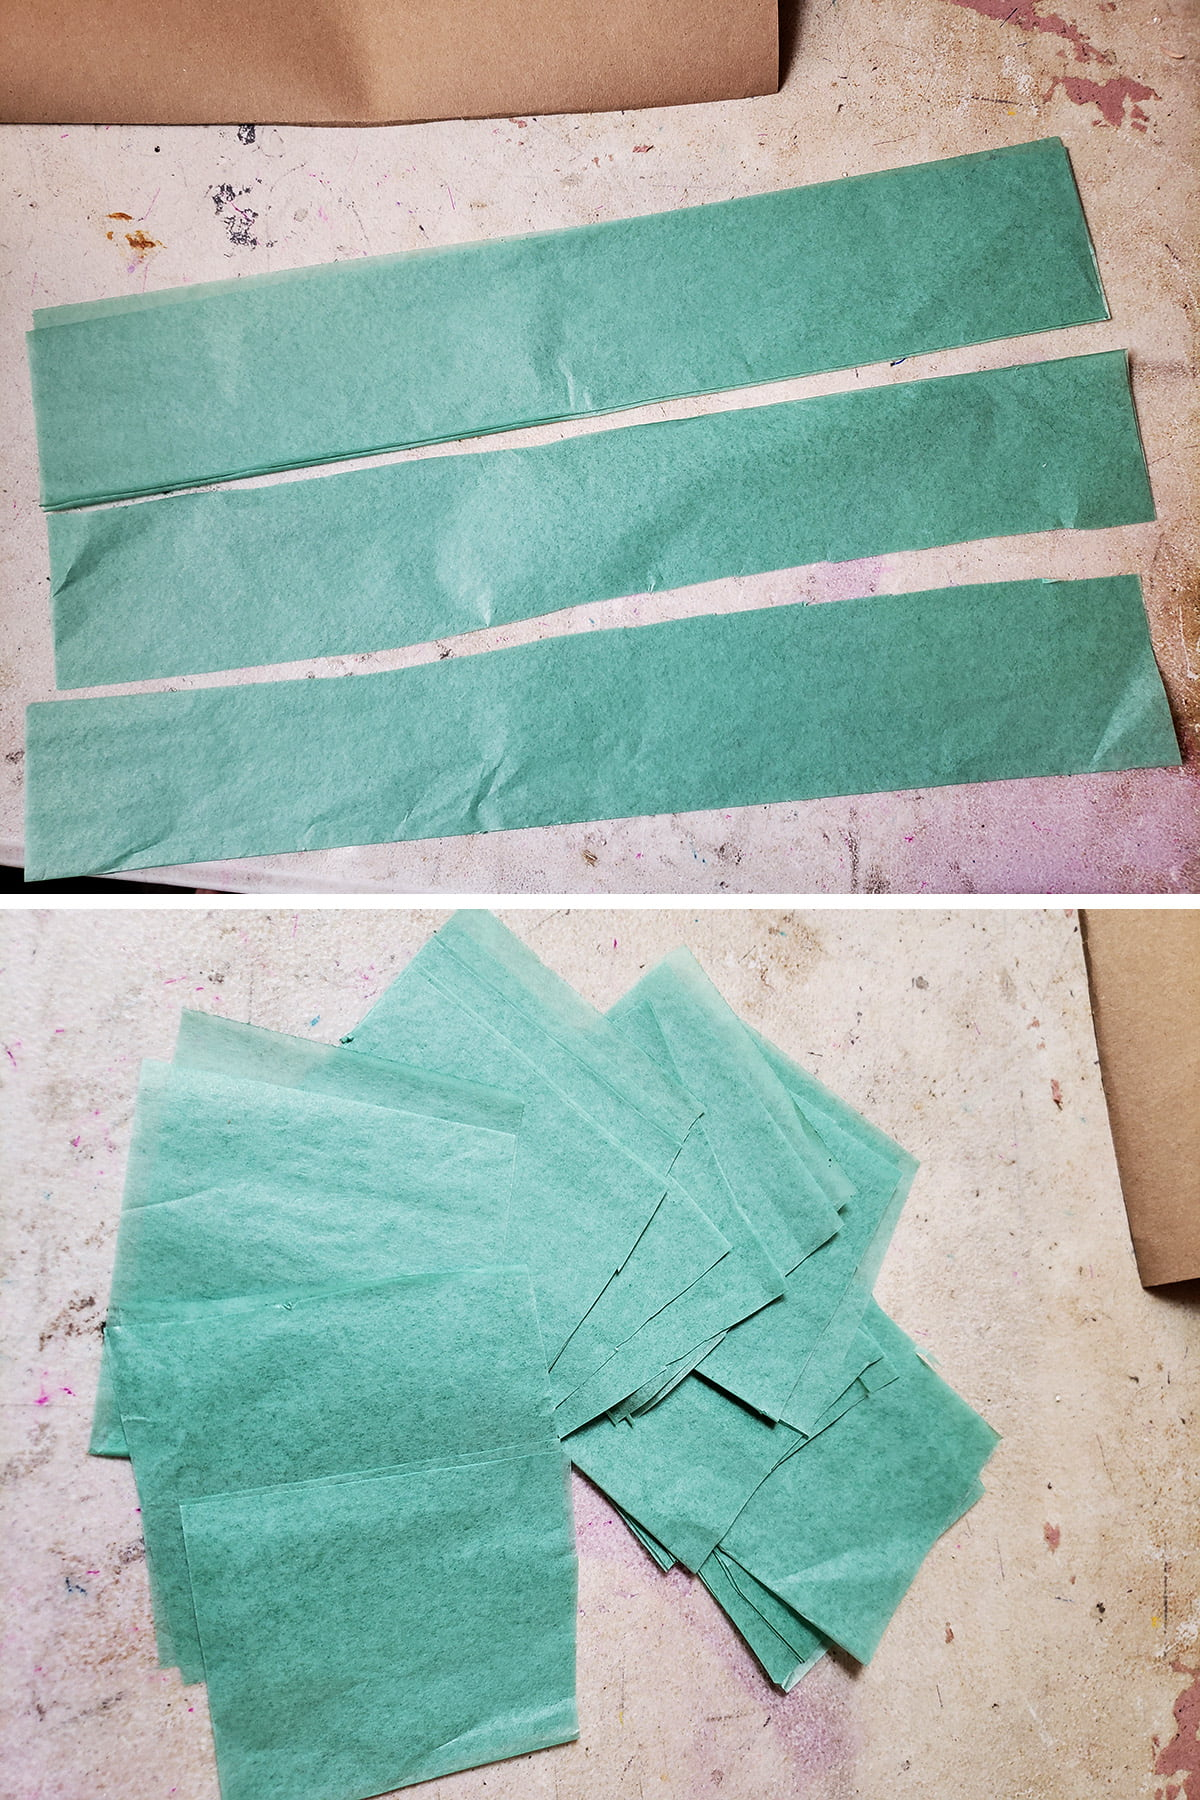 A two part compilation image showing strips cut from light green tissue paper, and then squares cut from those strips.